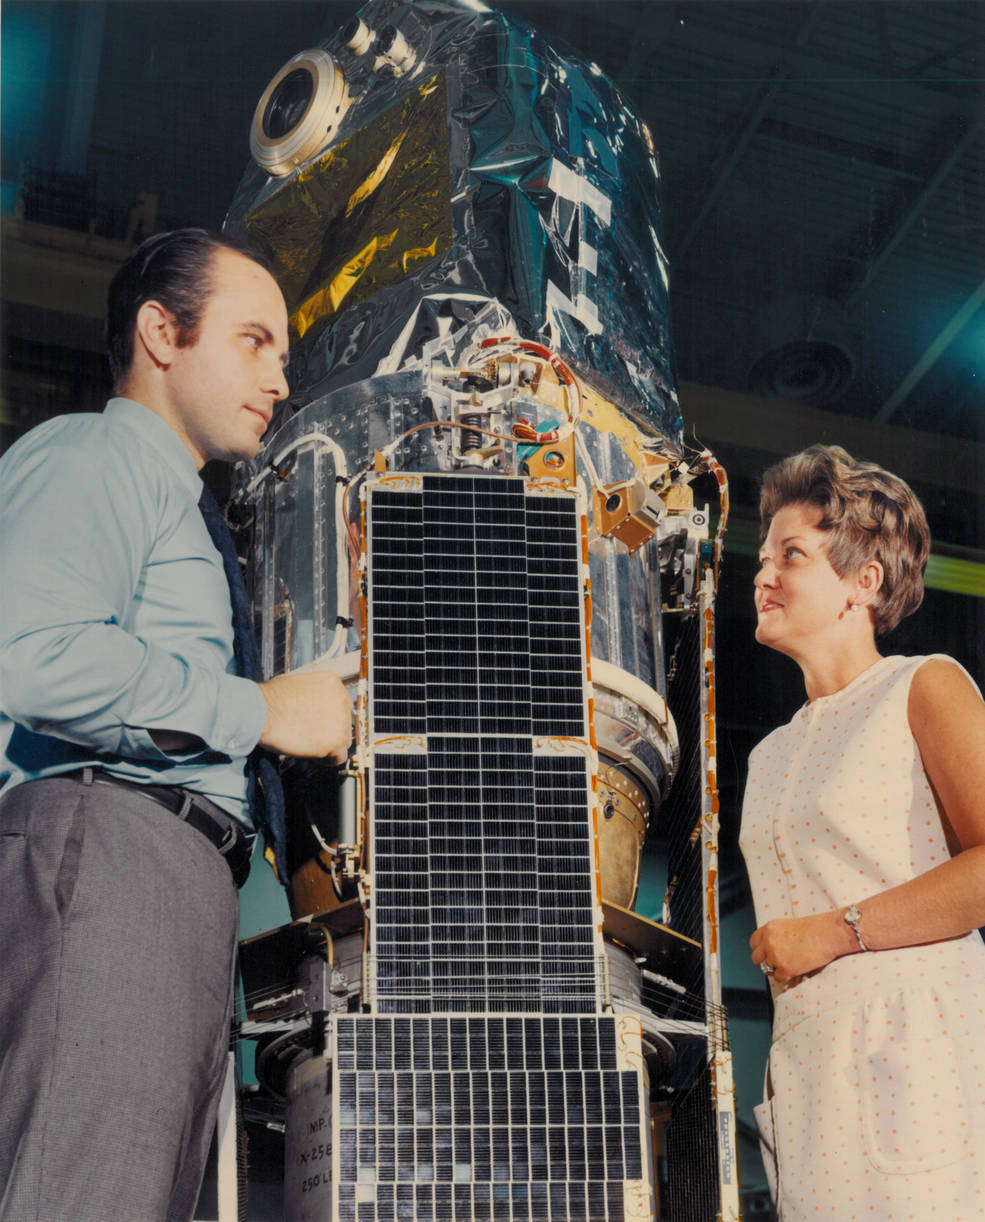 Marjorie Townsend stands in front of SAS-1 satellite and talks to man